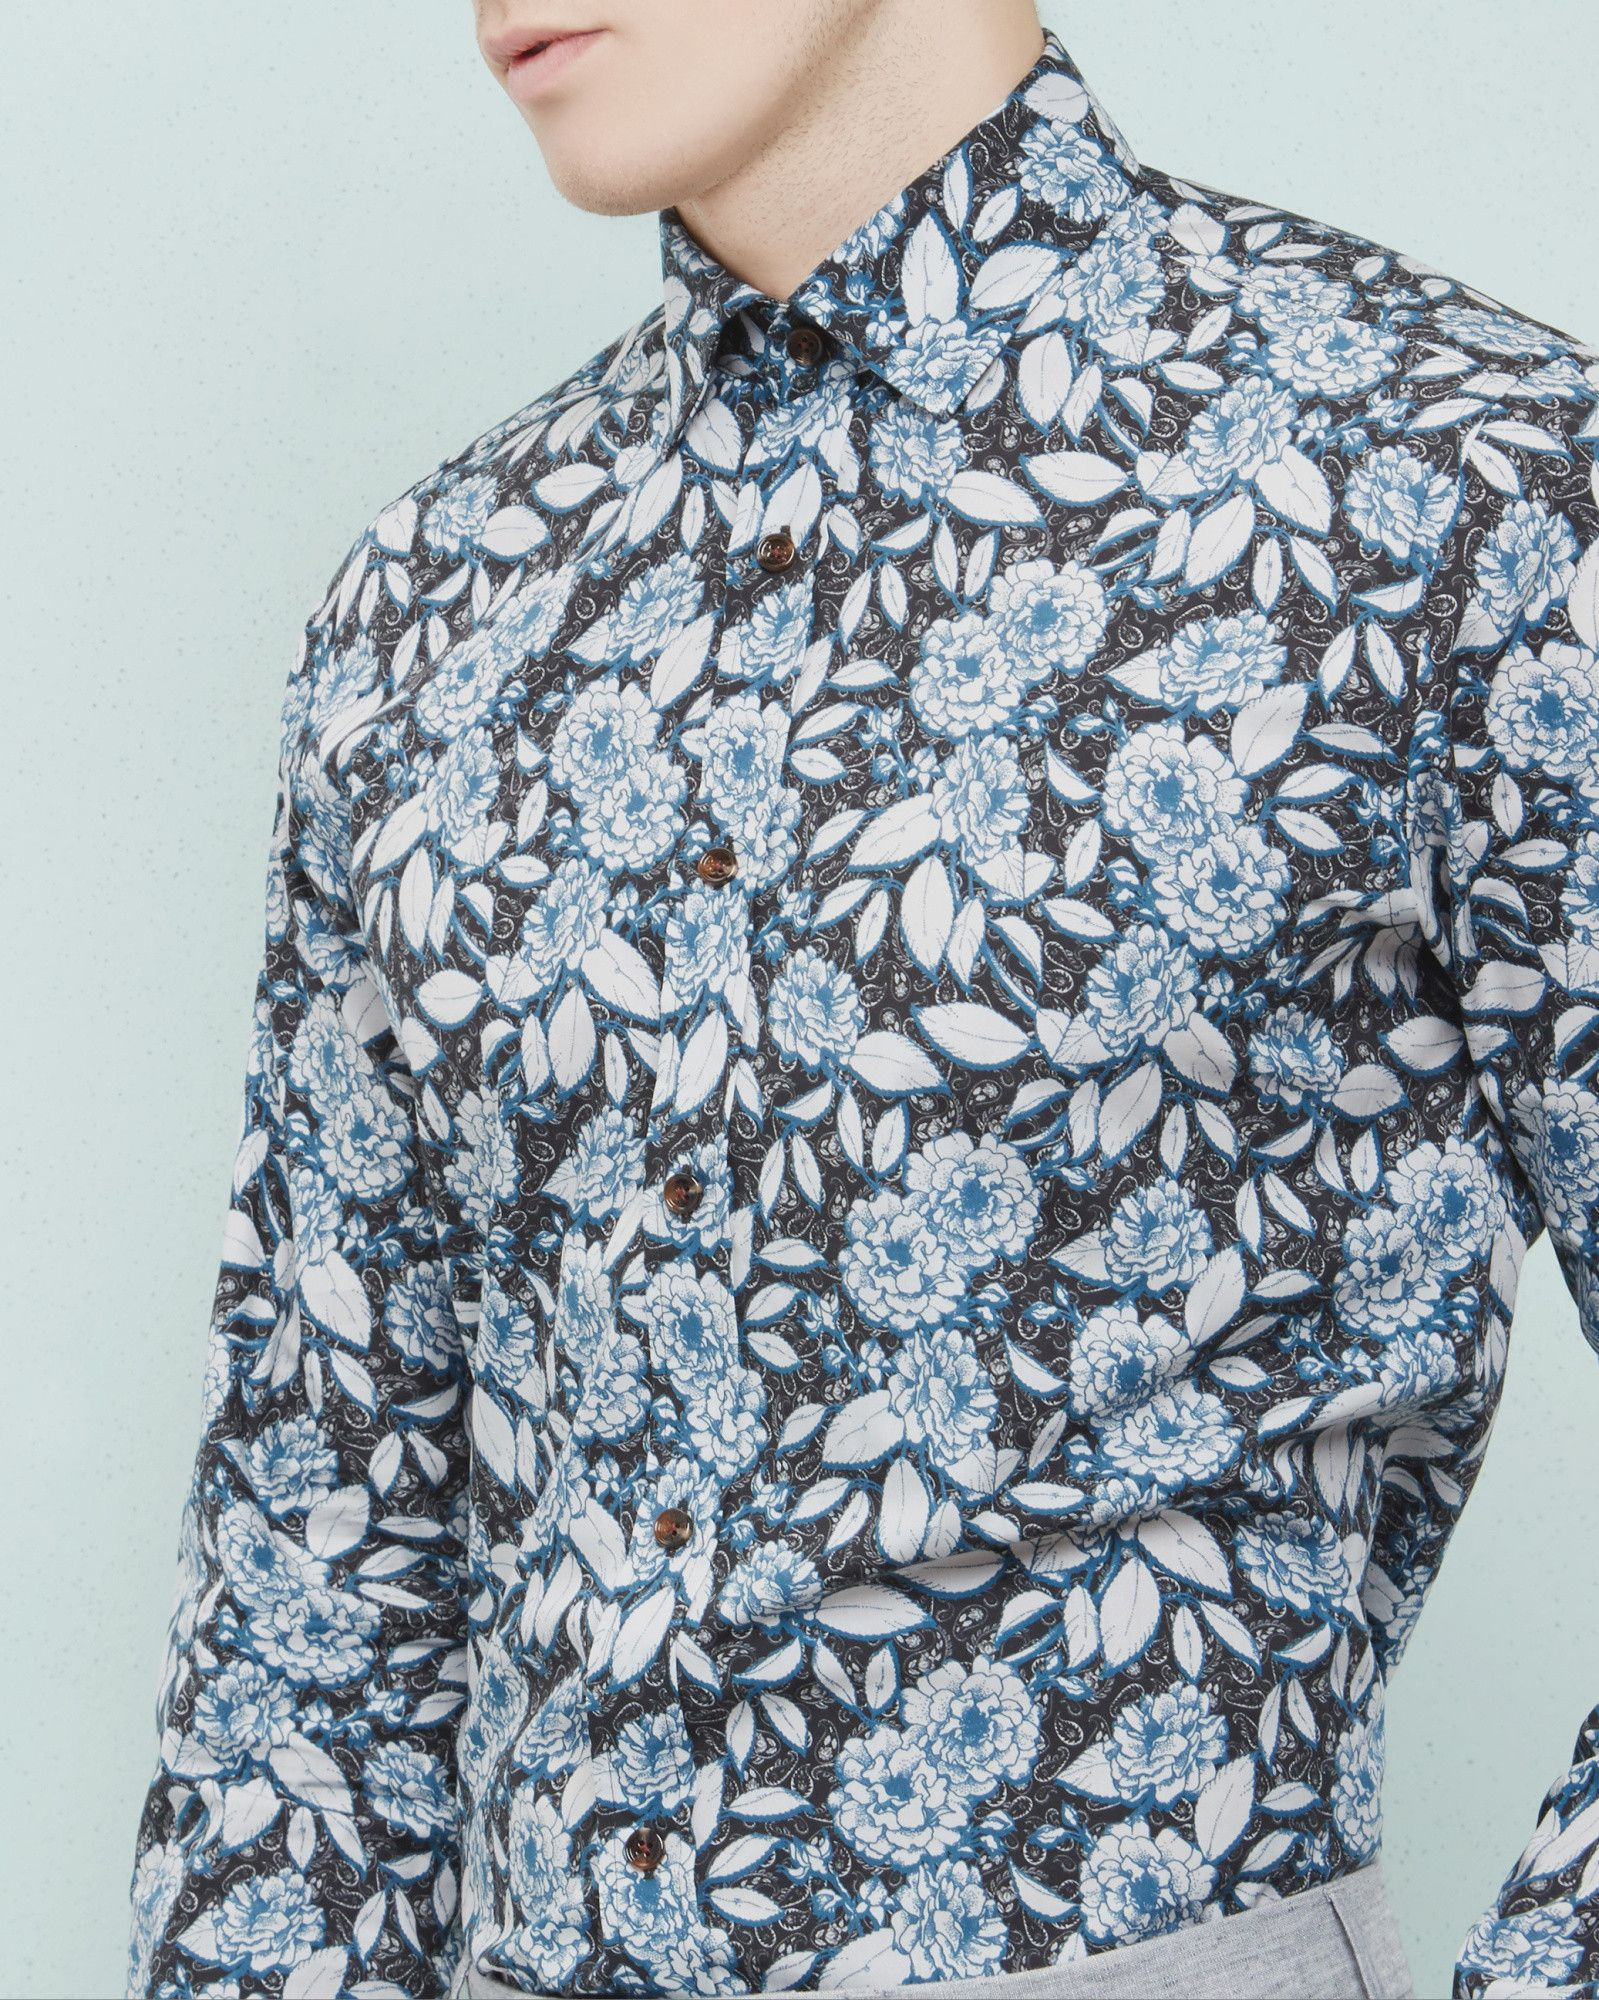 Floral Paisley Cotton Shirt Navy Shirts Ted Baker Uk S18